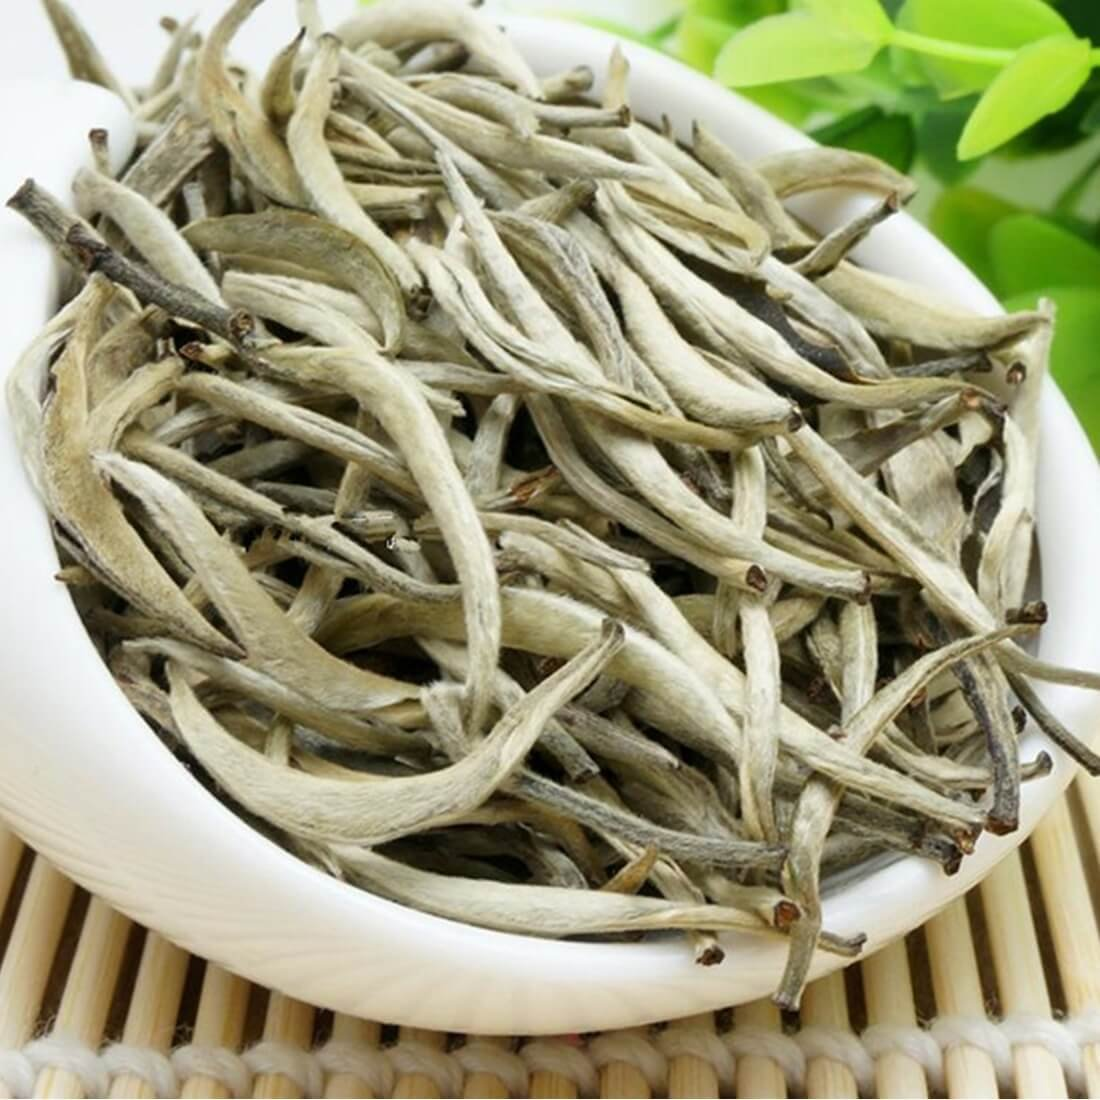 Premium Chinese Organic Bai Hao Yin Zhen Silver Needle White Leaf Tea - From Hunan Southern China (250g (8.81 ounce)) by China Farm Products